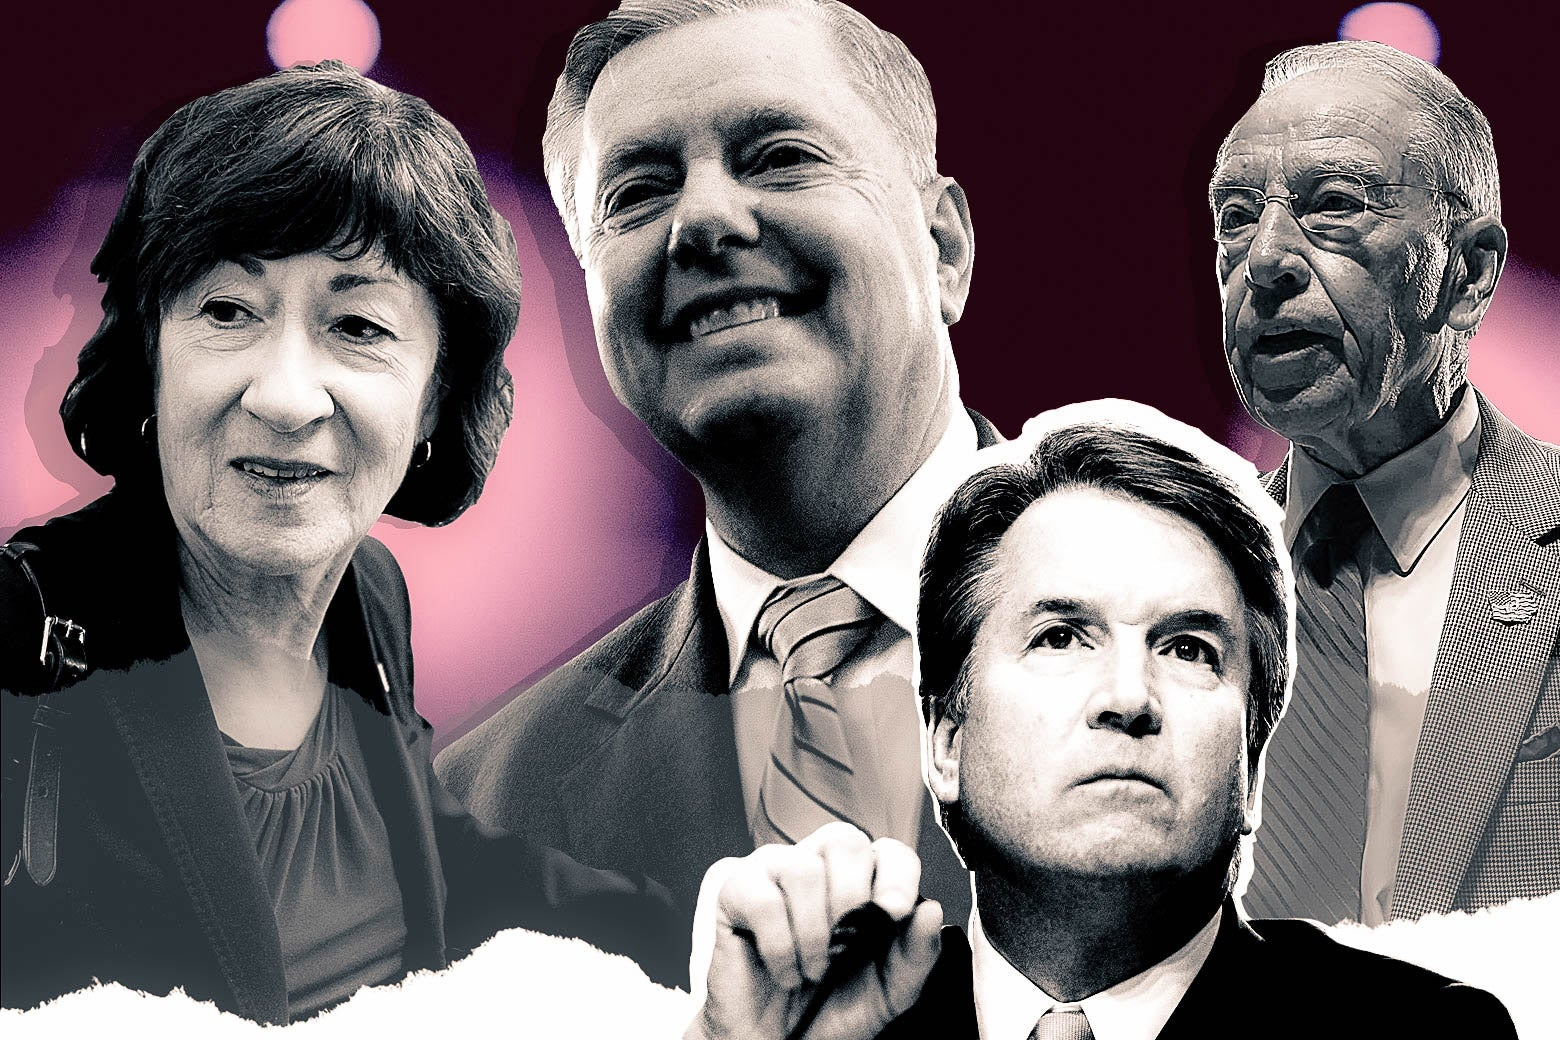 Photo collage of Sen. Susan Collins, Sen. Lindsey Graham, Judge Brett Kavanaugh, and Sen. Chuck Grassley